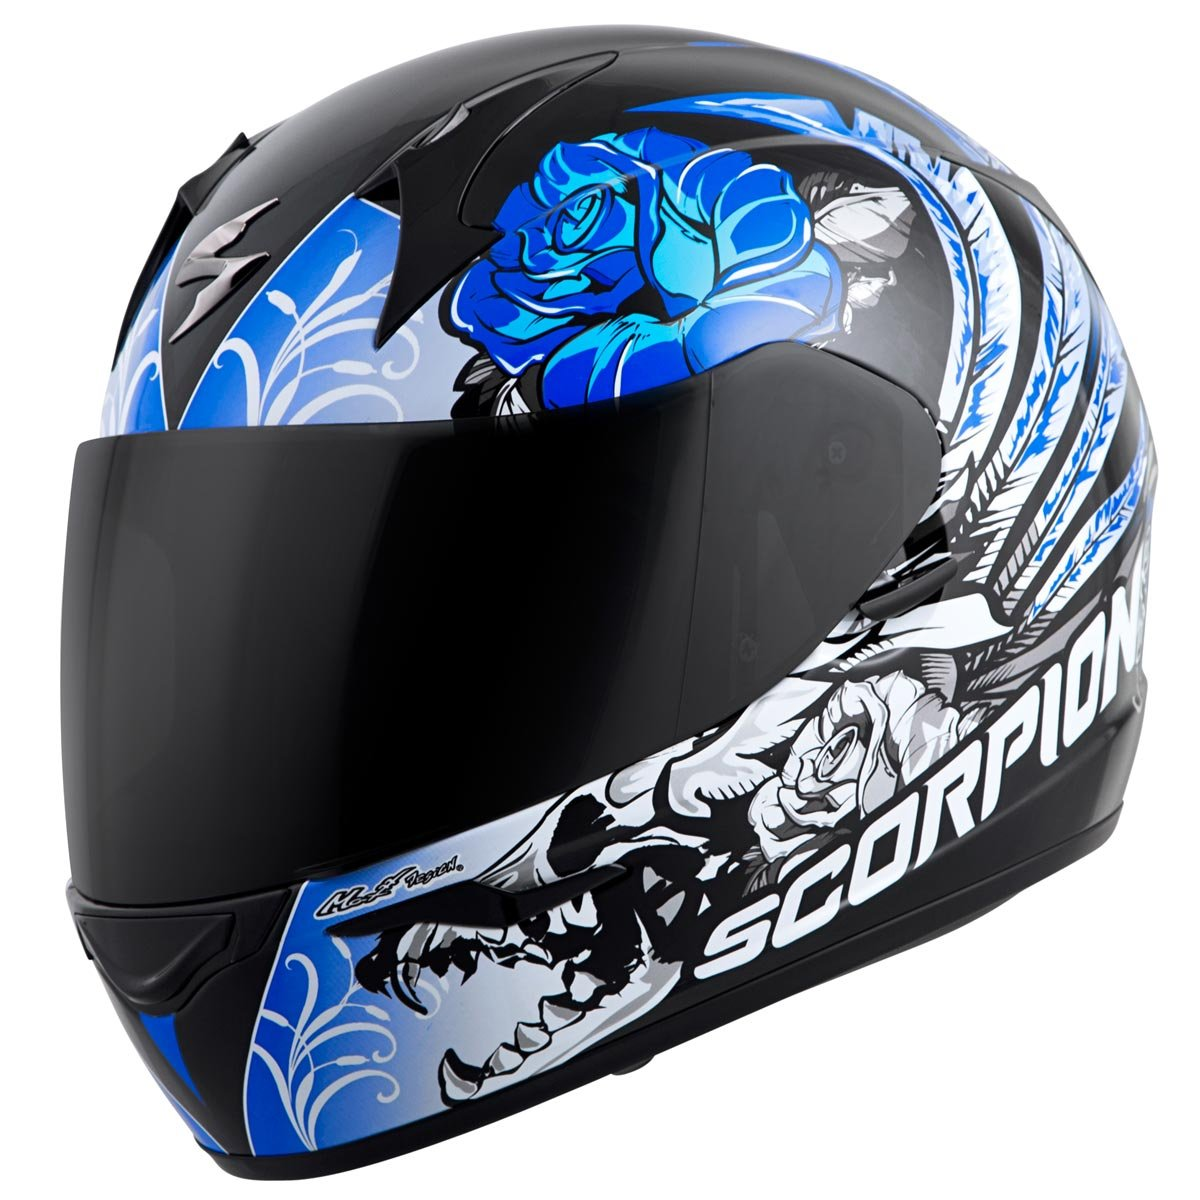 Amazon.com: Scorpion EXO-R410 Novel Street Motorcycle Helmet (Black/Blue, X-Small): Automotive